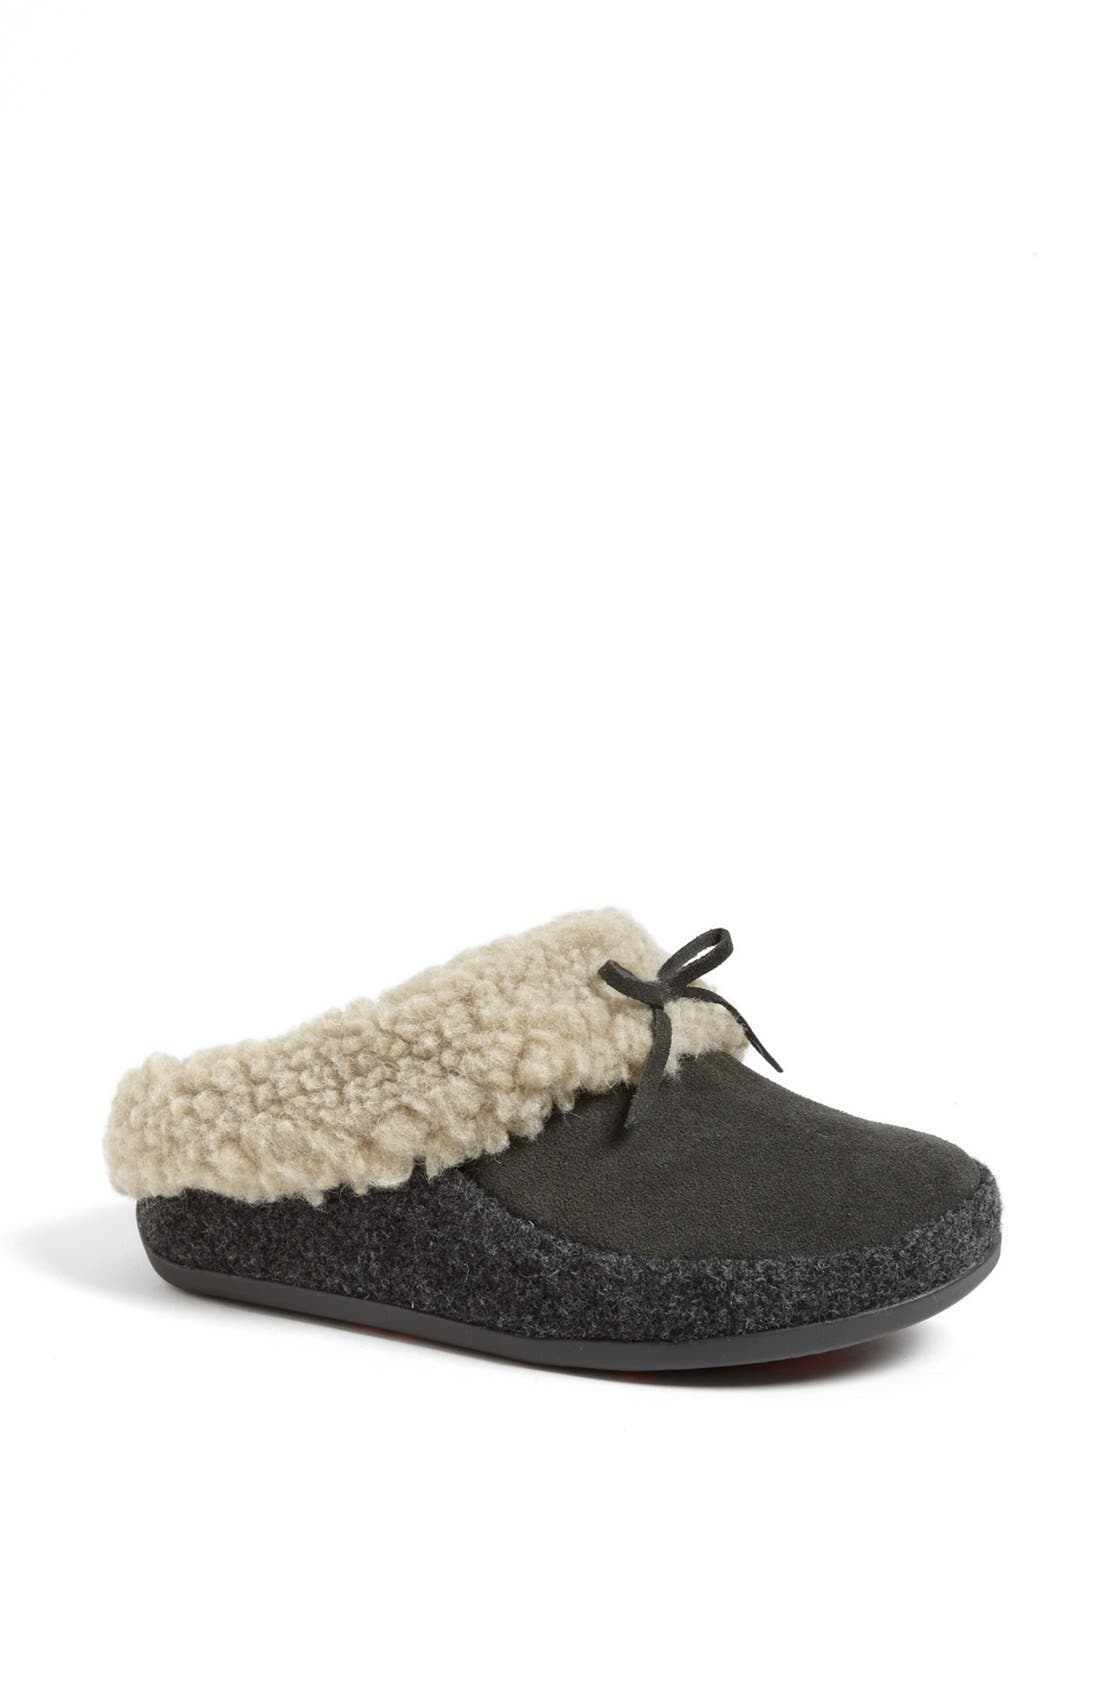 Main Image - FitFlop 'The Cuddler™' Slipper